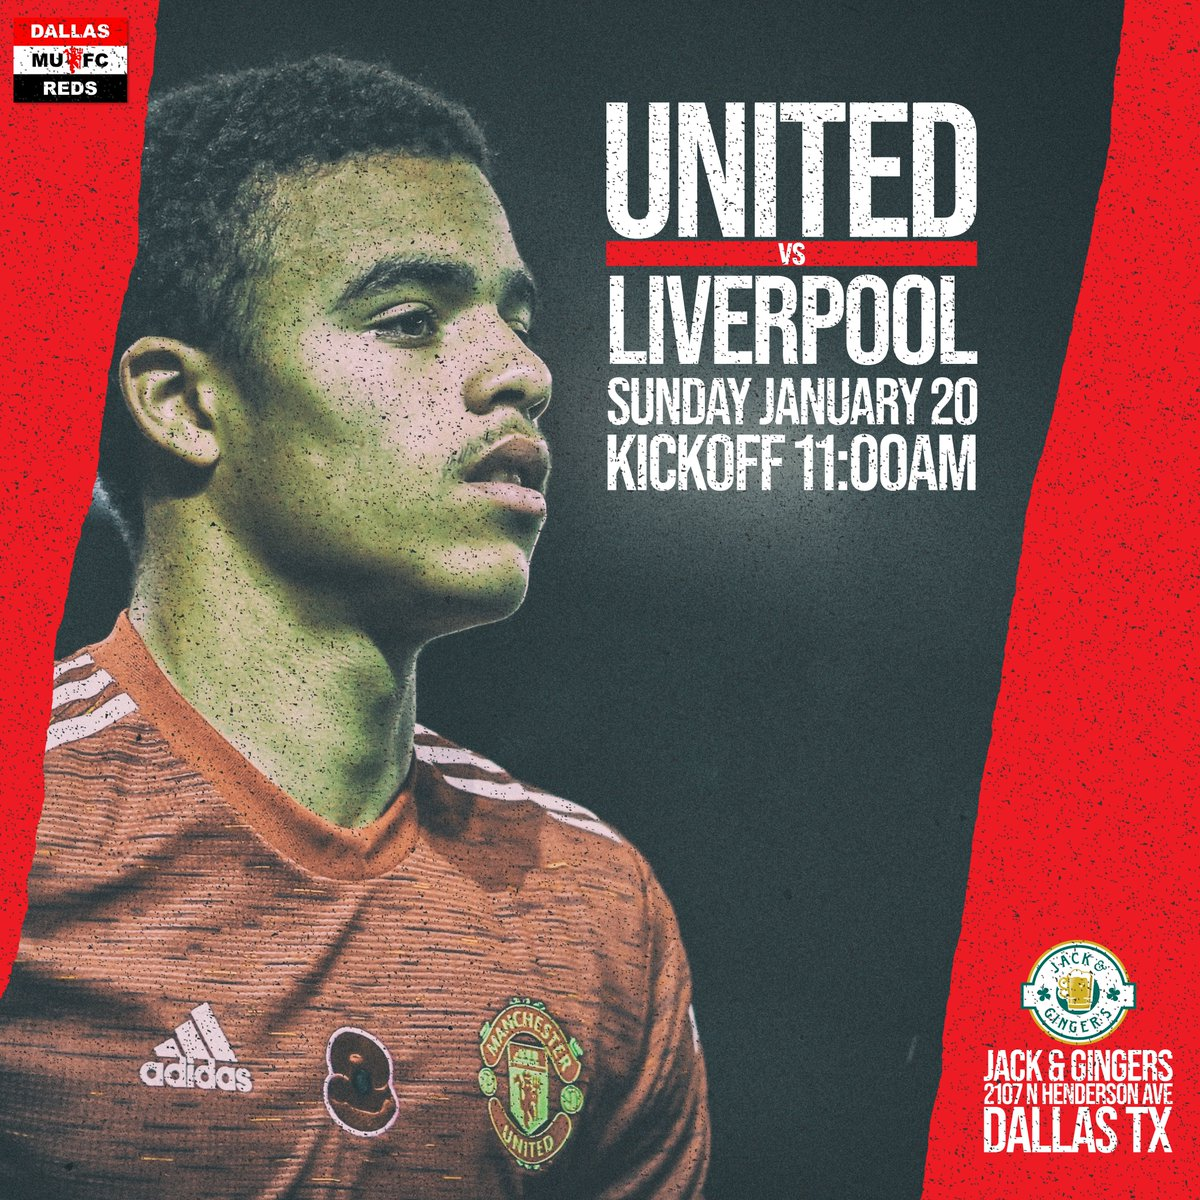 The biggest tie of the @emiratesfacup fourth round with #MUNLIV at the #TheatreofDreams Come join the official #MUSC of #DFW #Jacks #Dallas #Texas this Sunday morning. Kickoff at 11:00am. Event in bio - Click 'Going' and share with your friends. #DallasReds #FACup #UTFR #MUFC